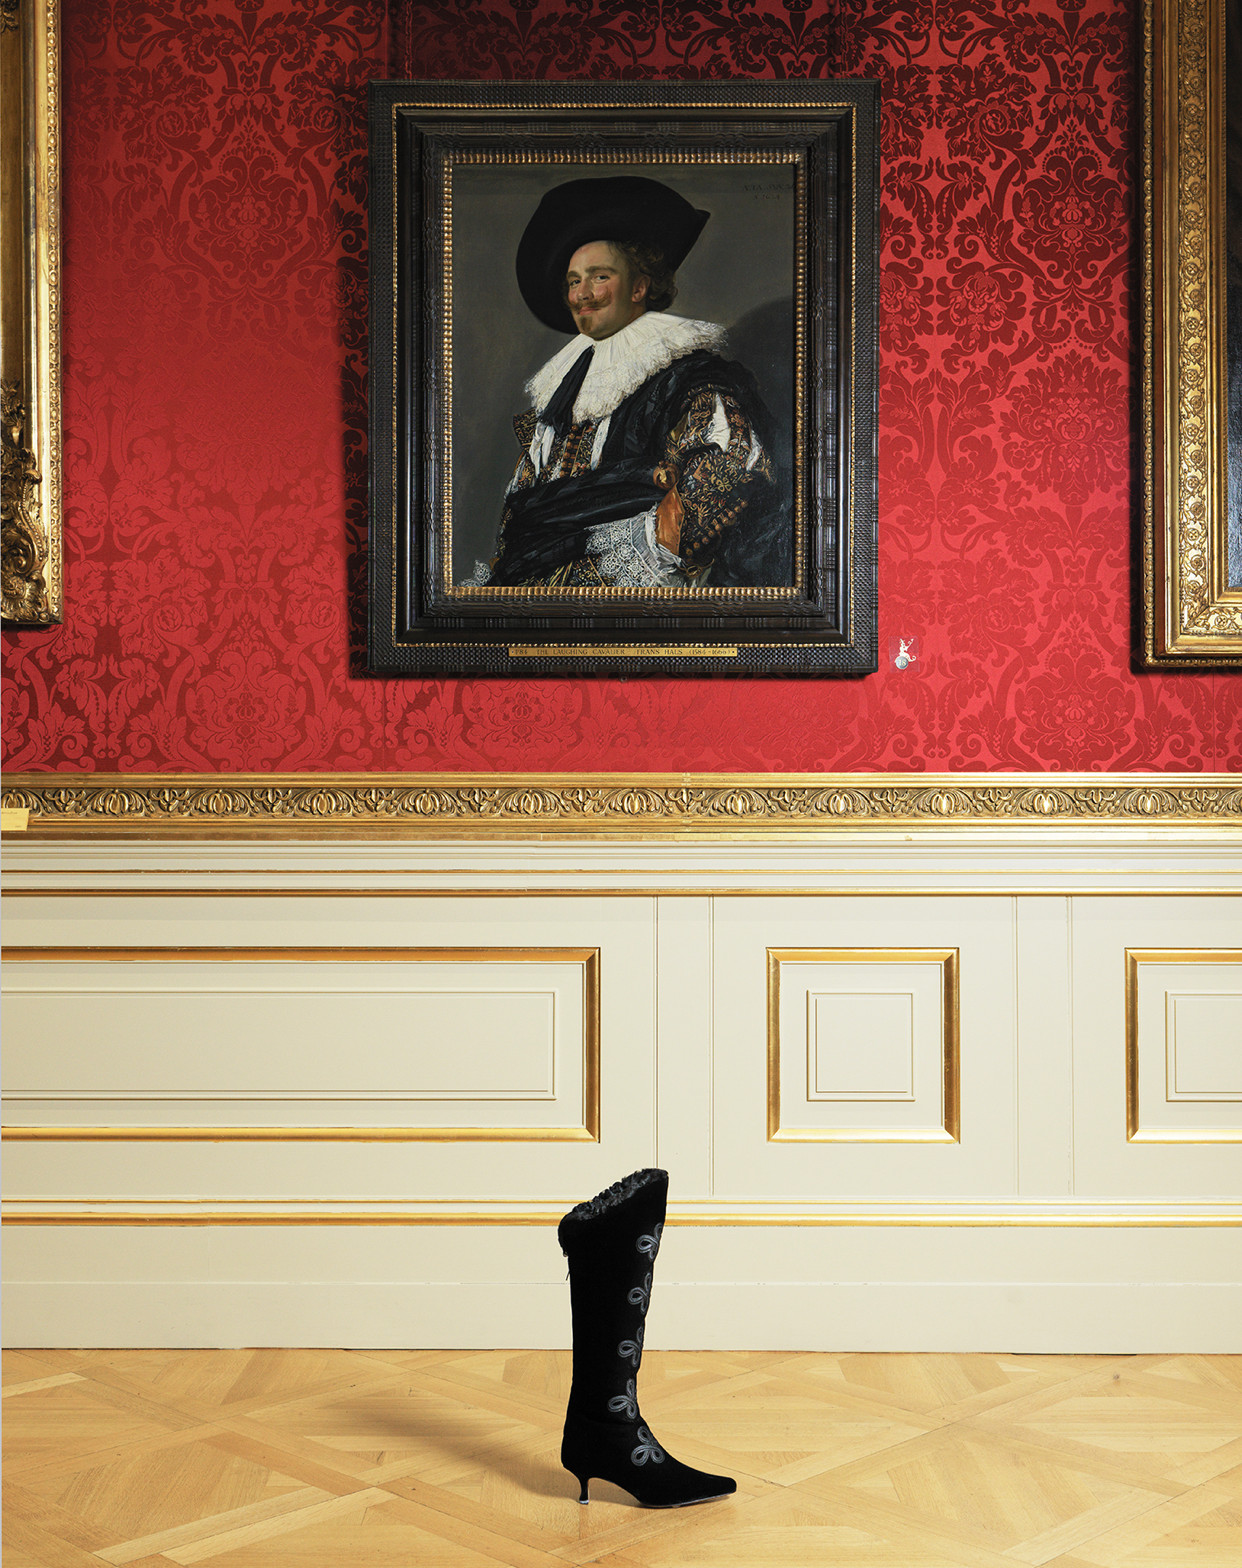 The Asha boot. A black knee high boot with ribbons, is positioned in front of The Laughing Cavalier painting by Frans Hals.